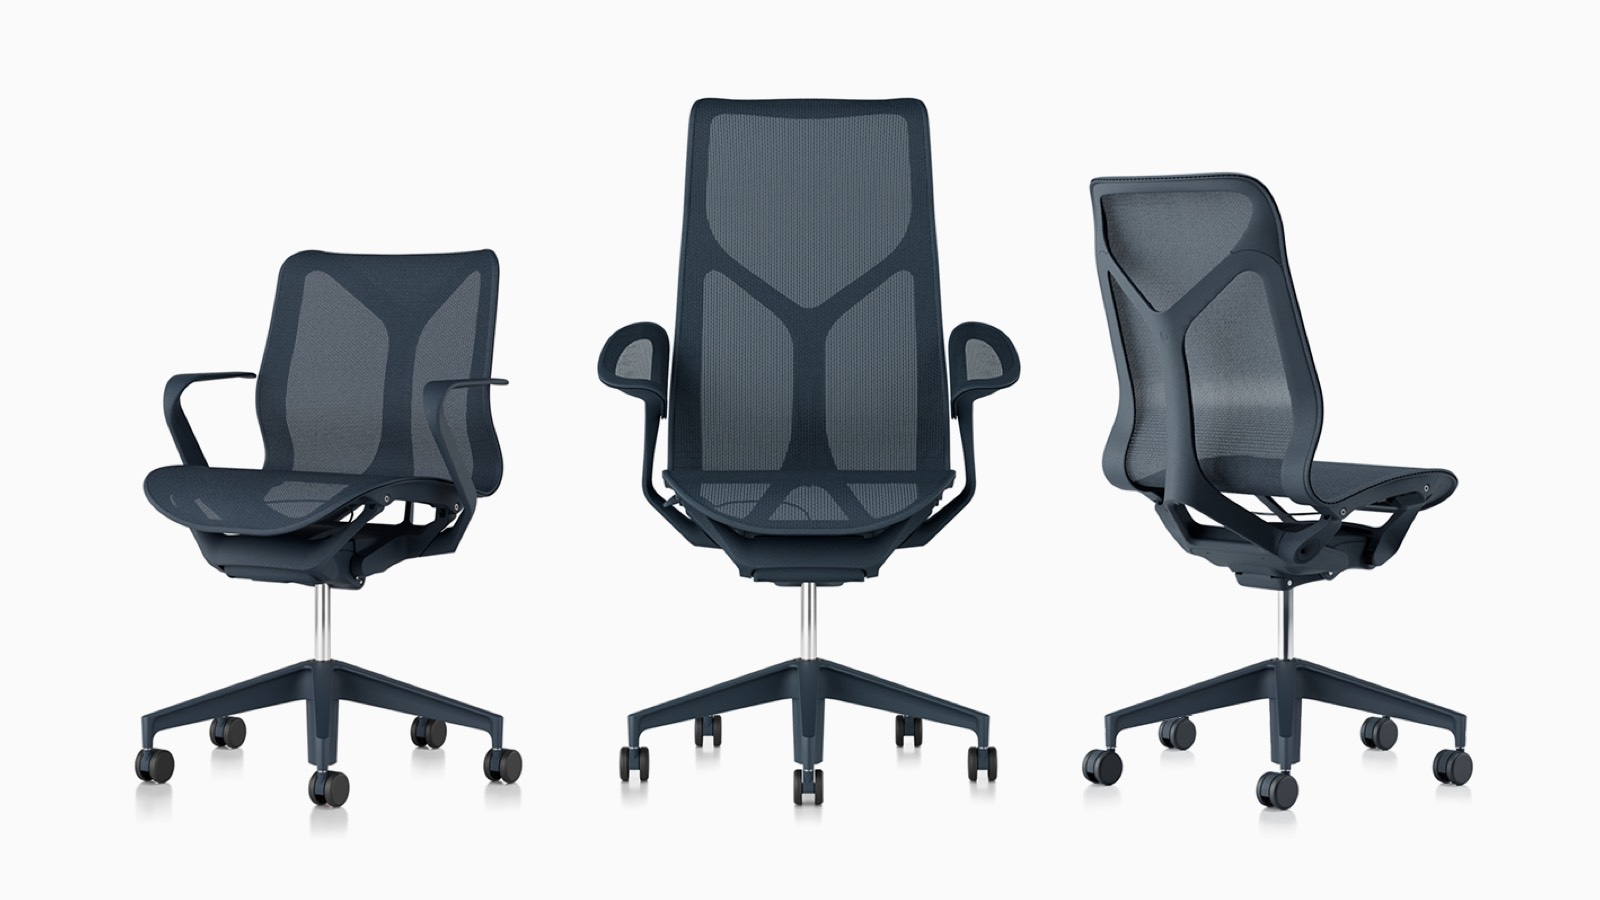 Low-back, high-back, and mid-back Cosm ergonomic desk chairs with suspension materials, bases, and frames in Nightfall navy blue.